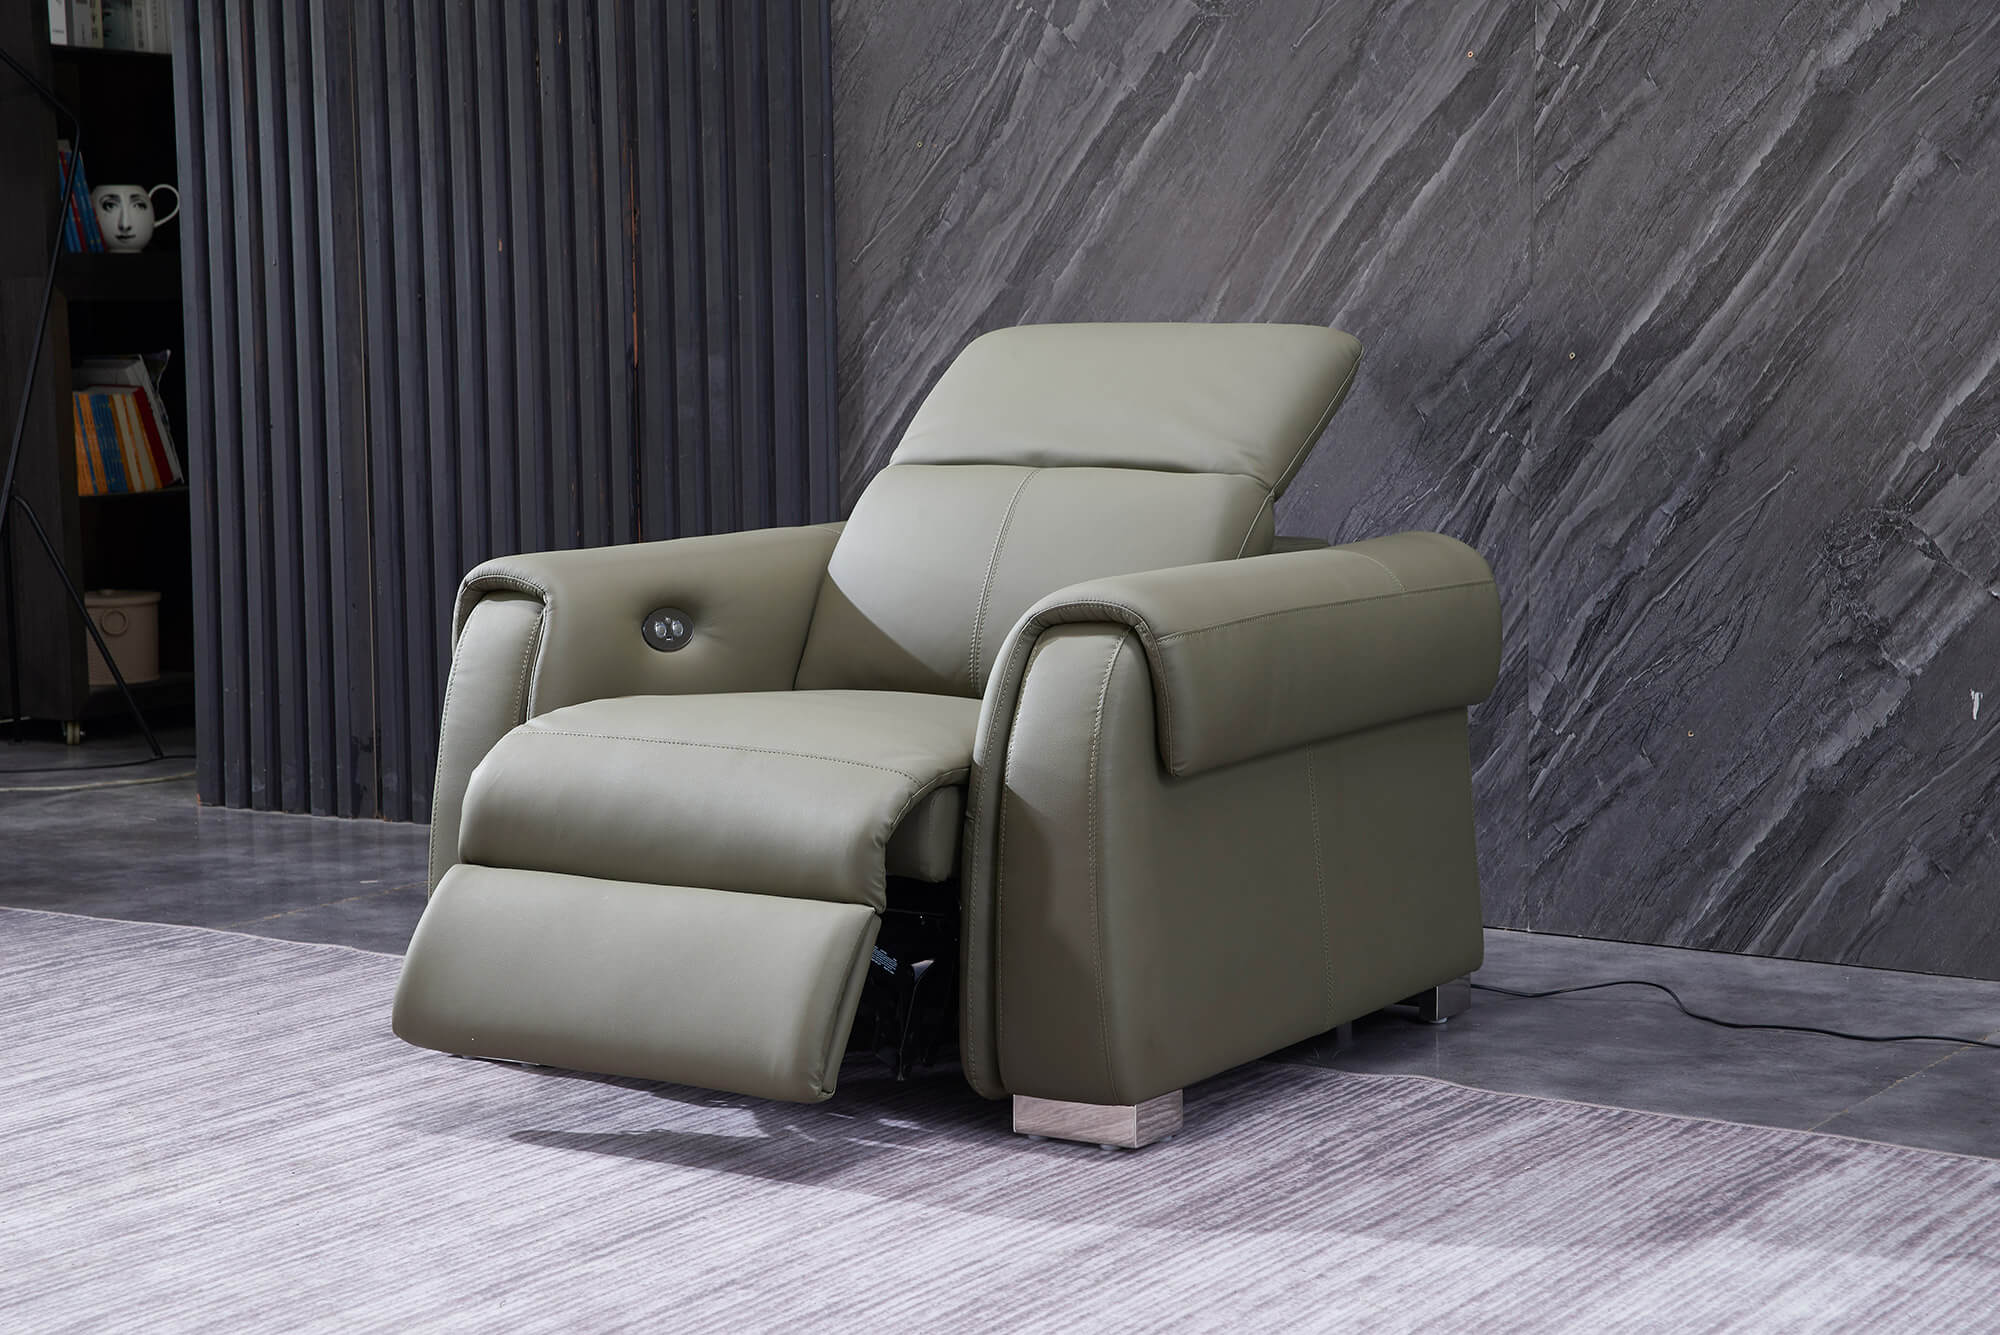 olive leather electric recliner 1 seater sofa reclined